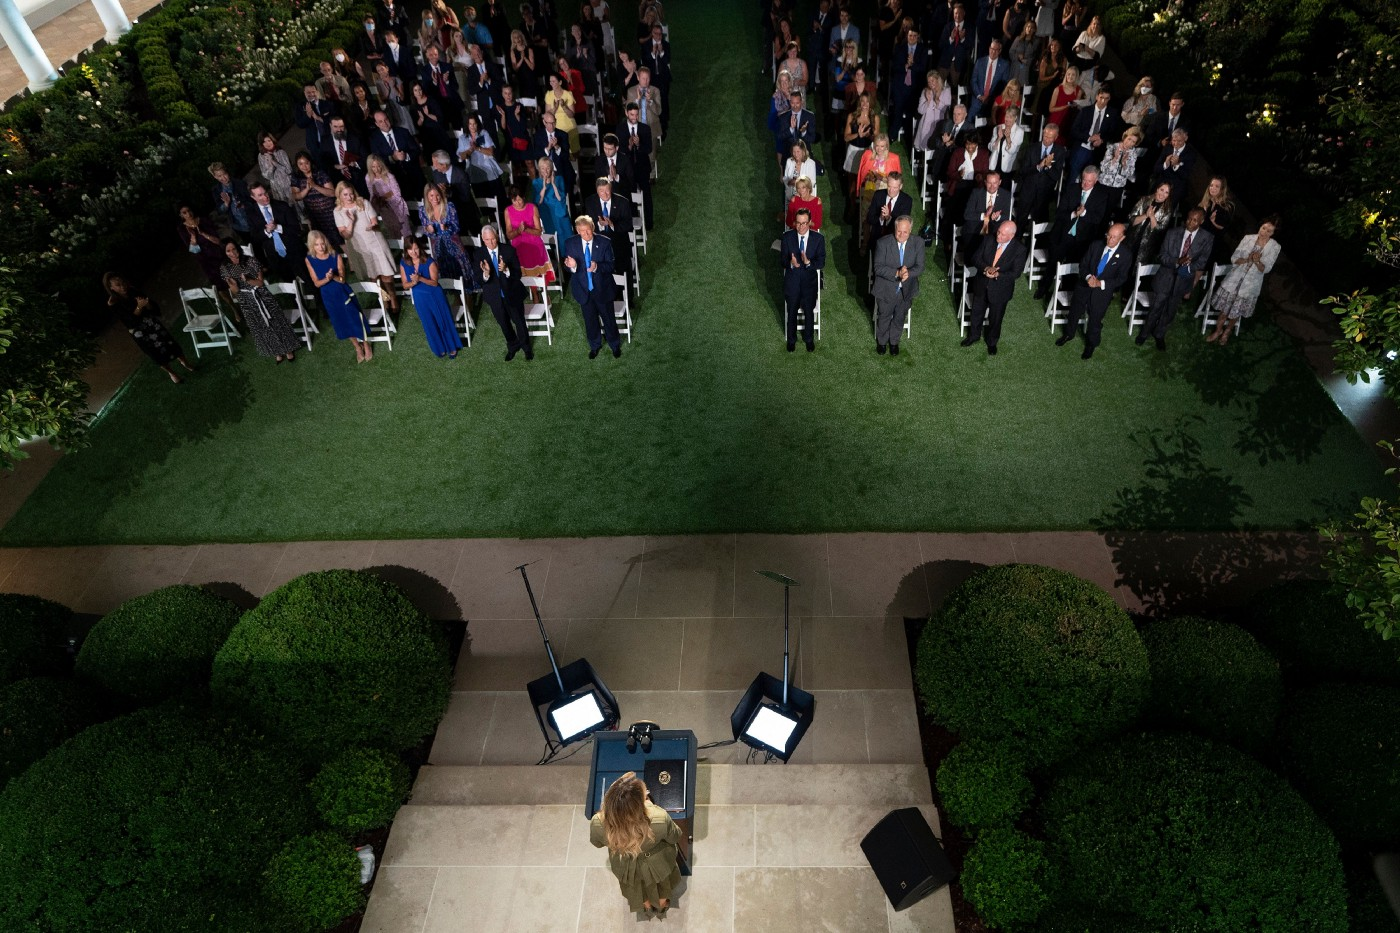 Melania Trump addresses the Republican Convention during its second day from the Rose Garden of the White House August 25, 20